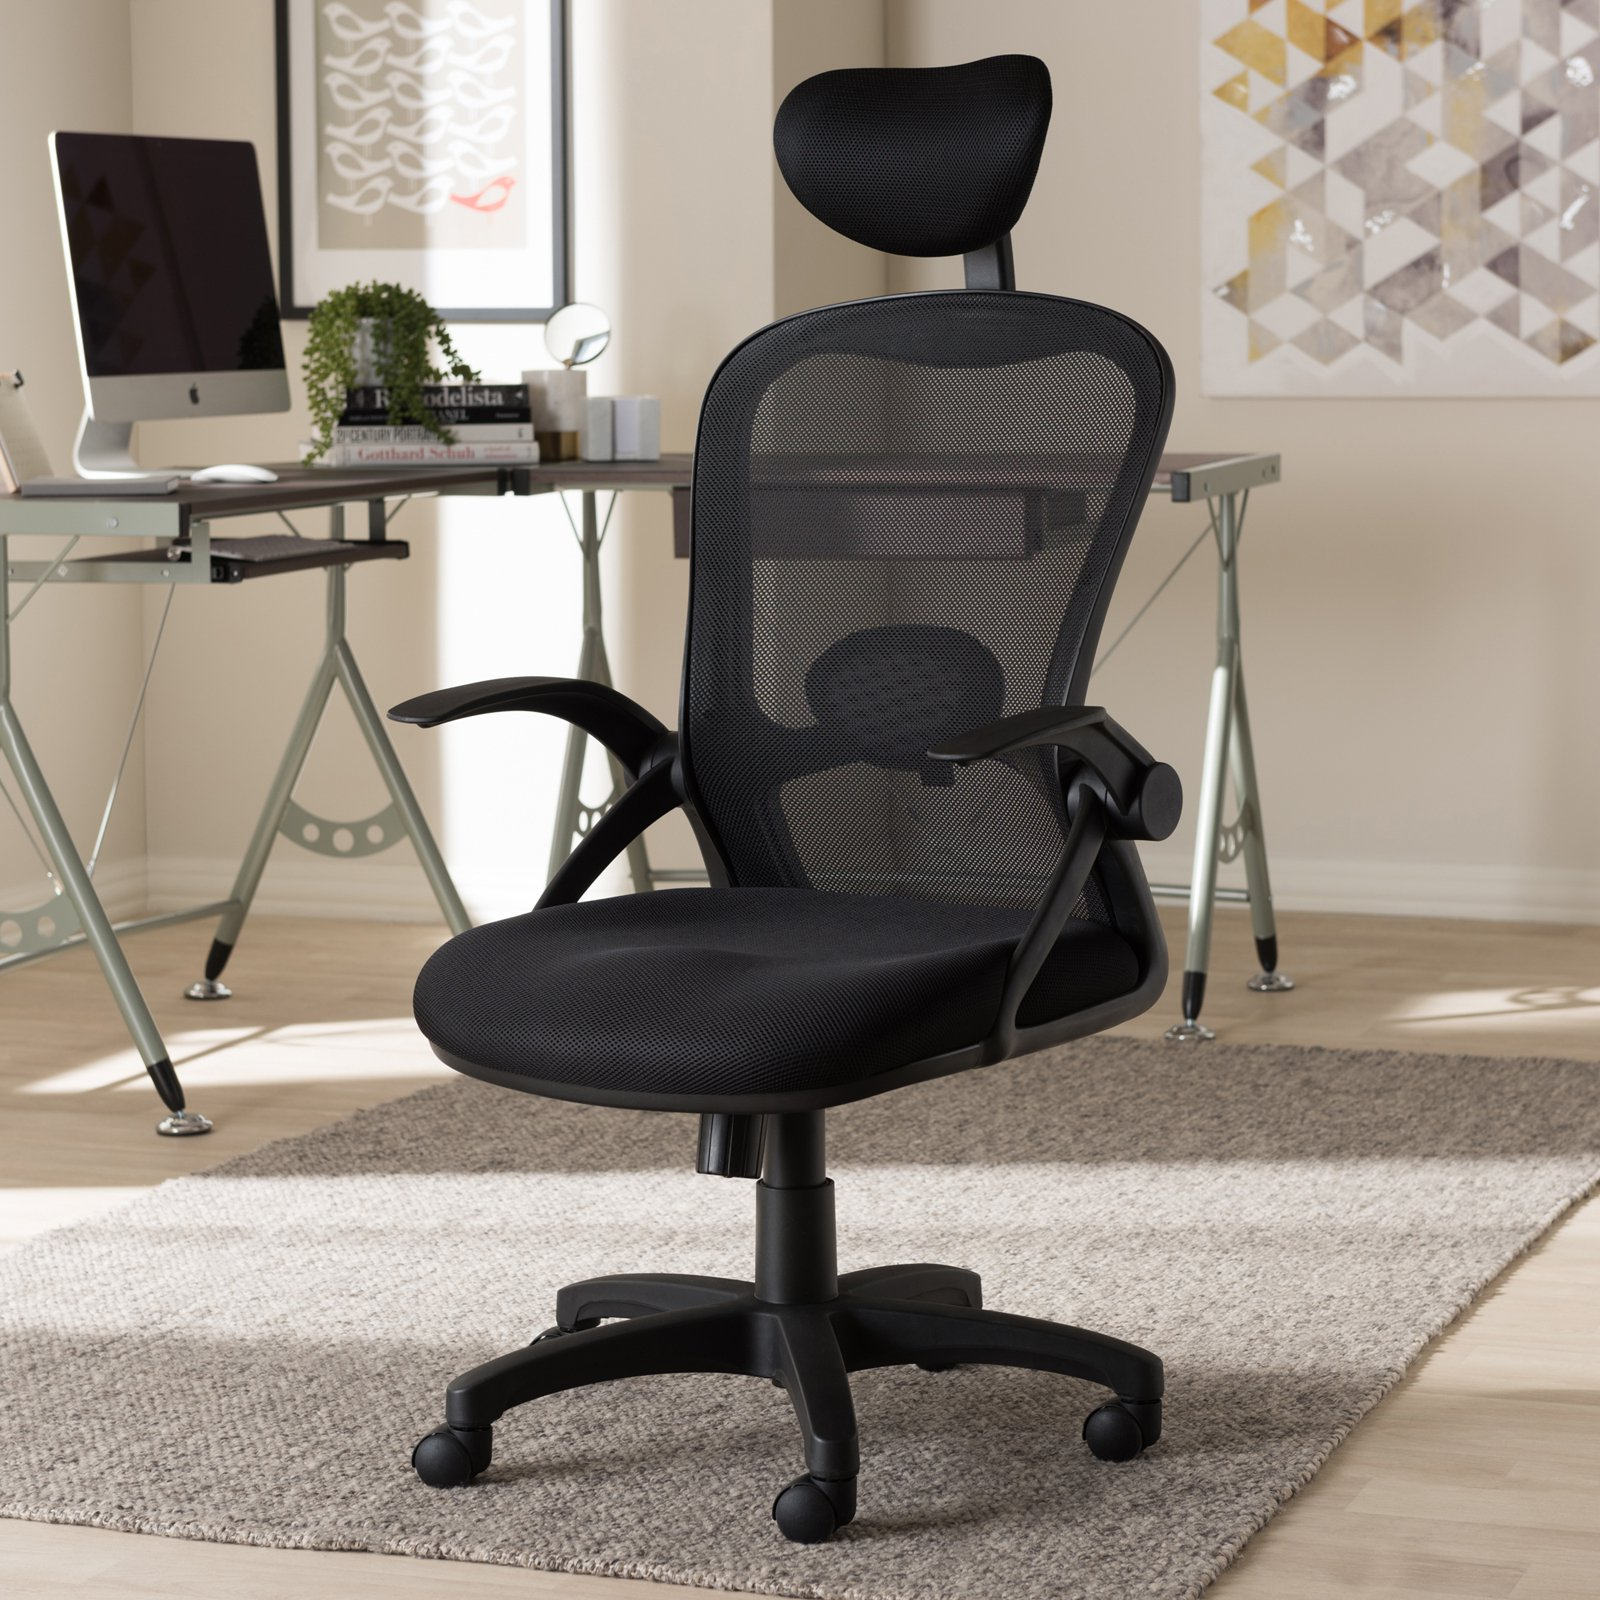 Minimalist Desk Chair Baxton Studio Ernst Modern And Contemporary Ergonomic Black Mesh Office Chair